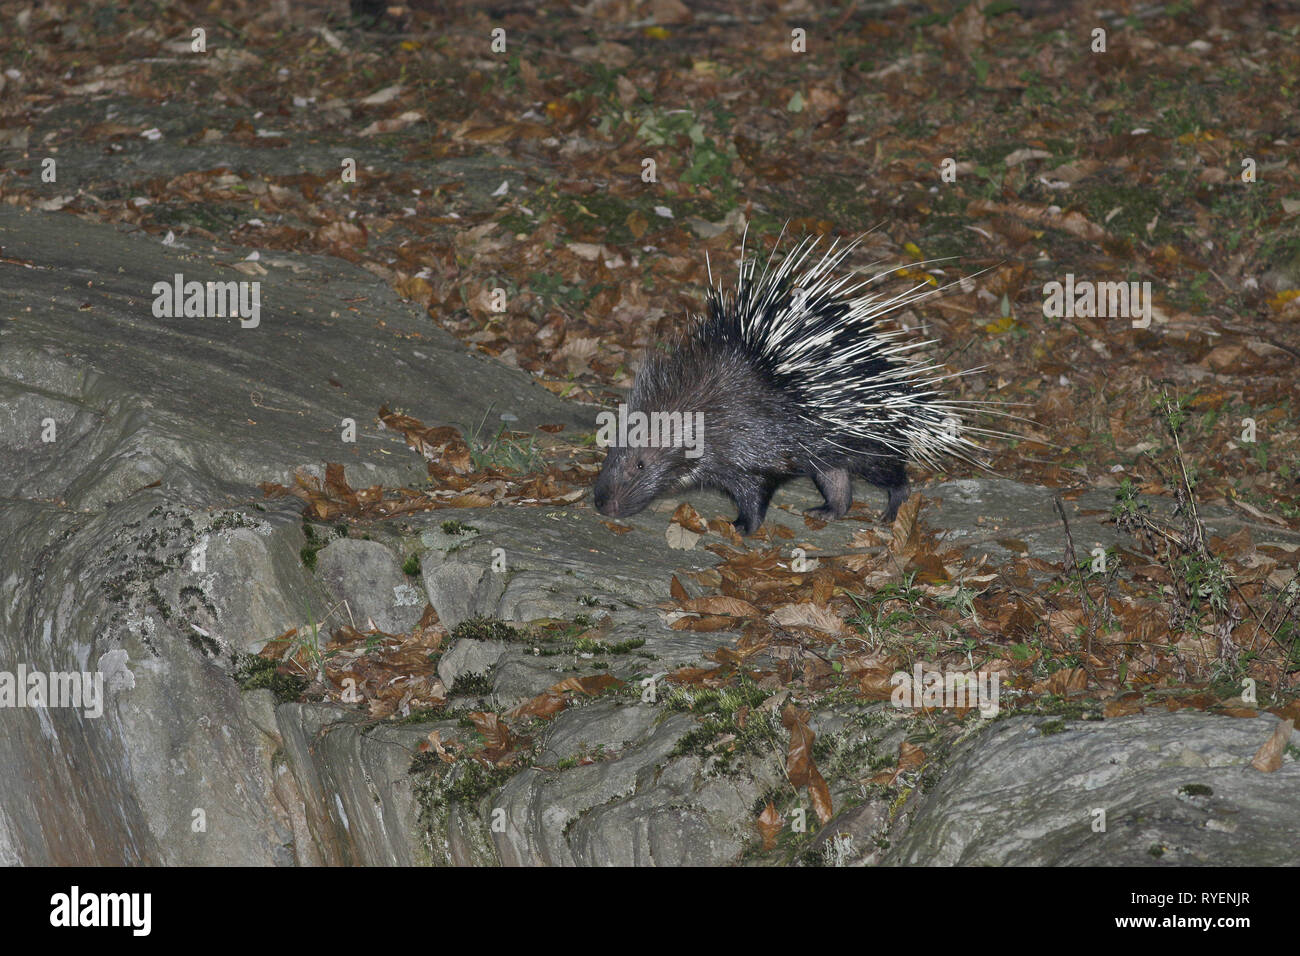 Malayan Porcupine, Hysterix brachyura, foraging at night - Stock Image